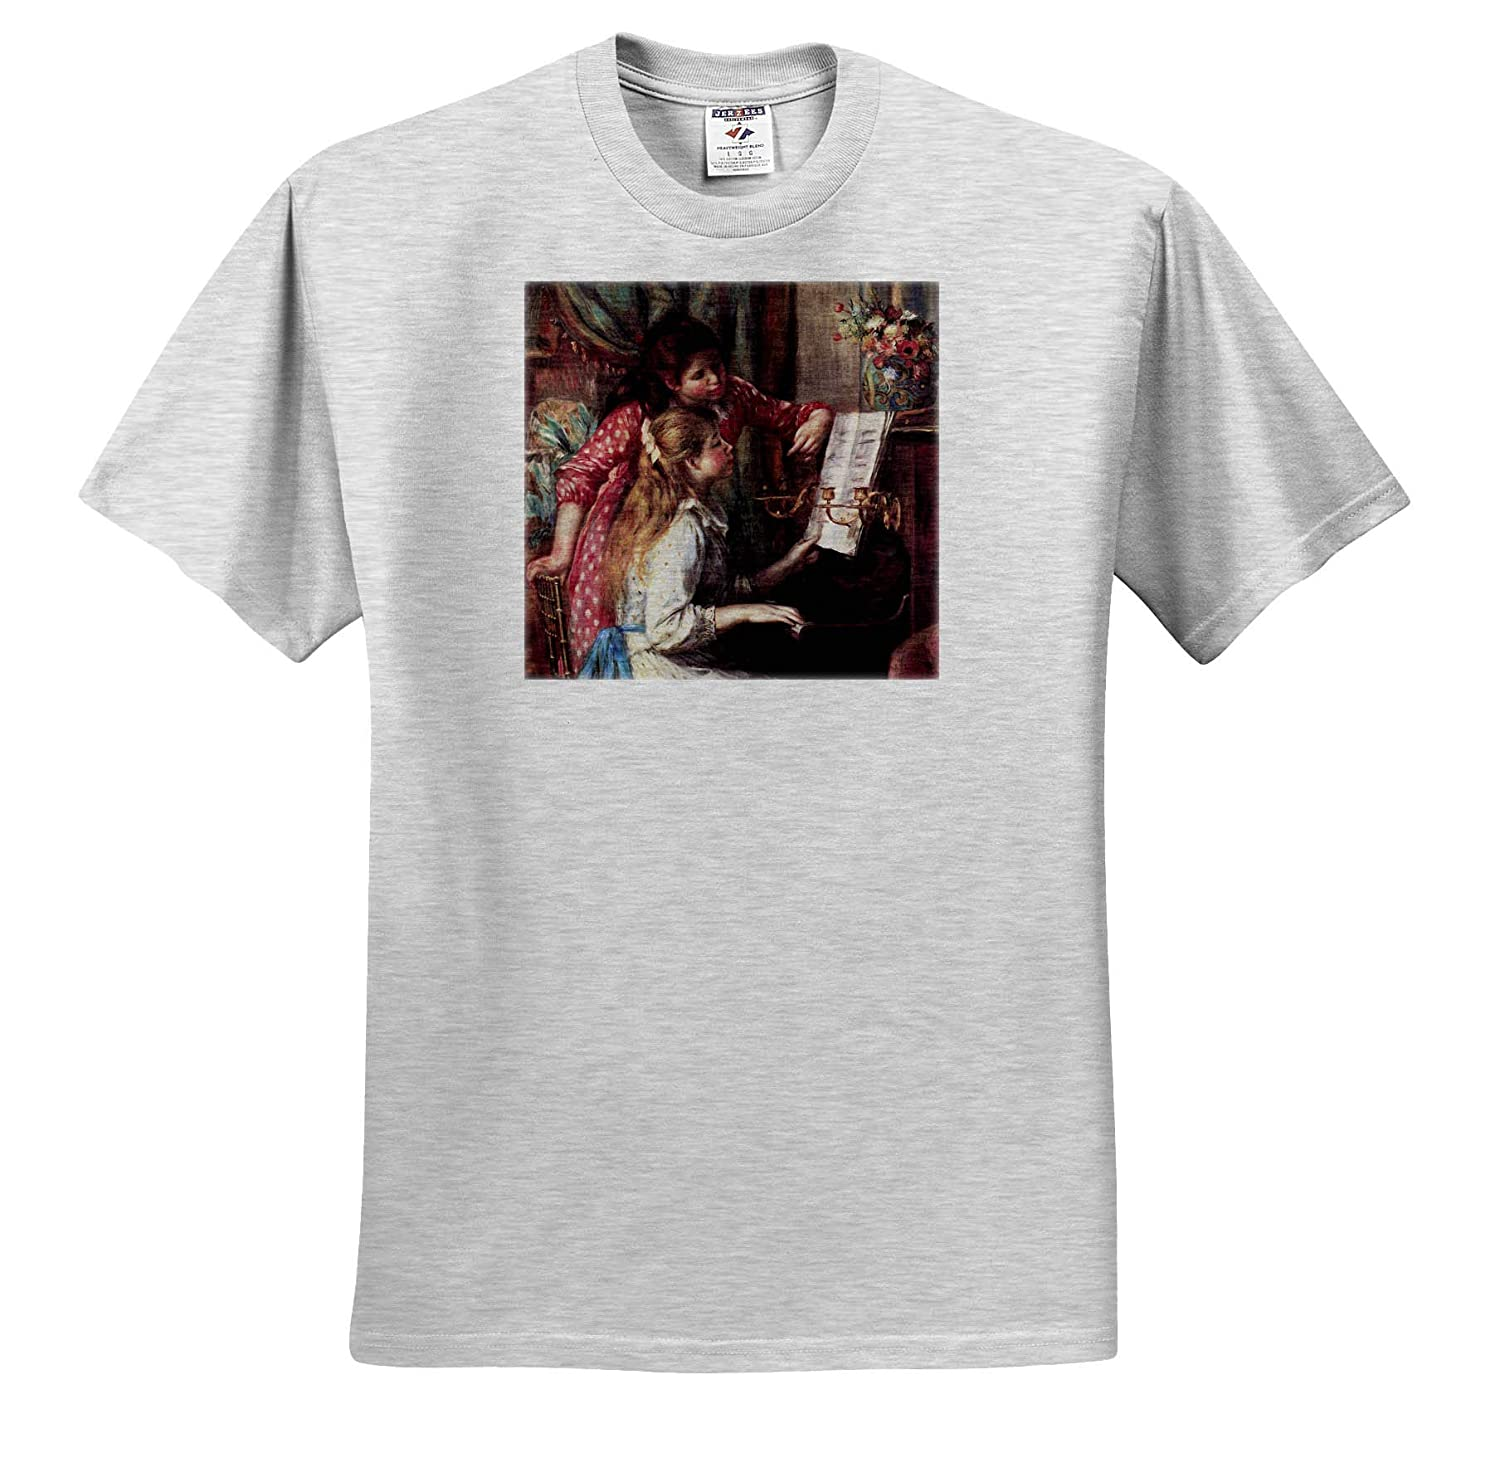 Girls at The Piano Masterpieces 3dRose VintageChest Renoir T-Shirts